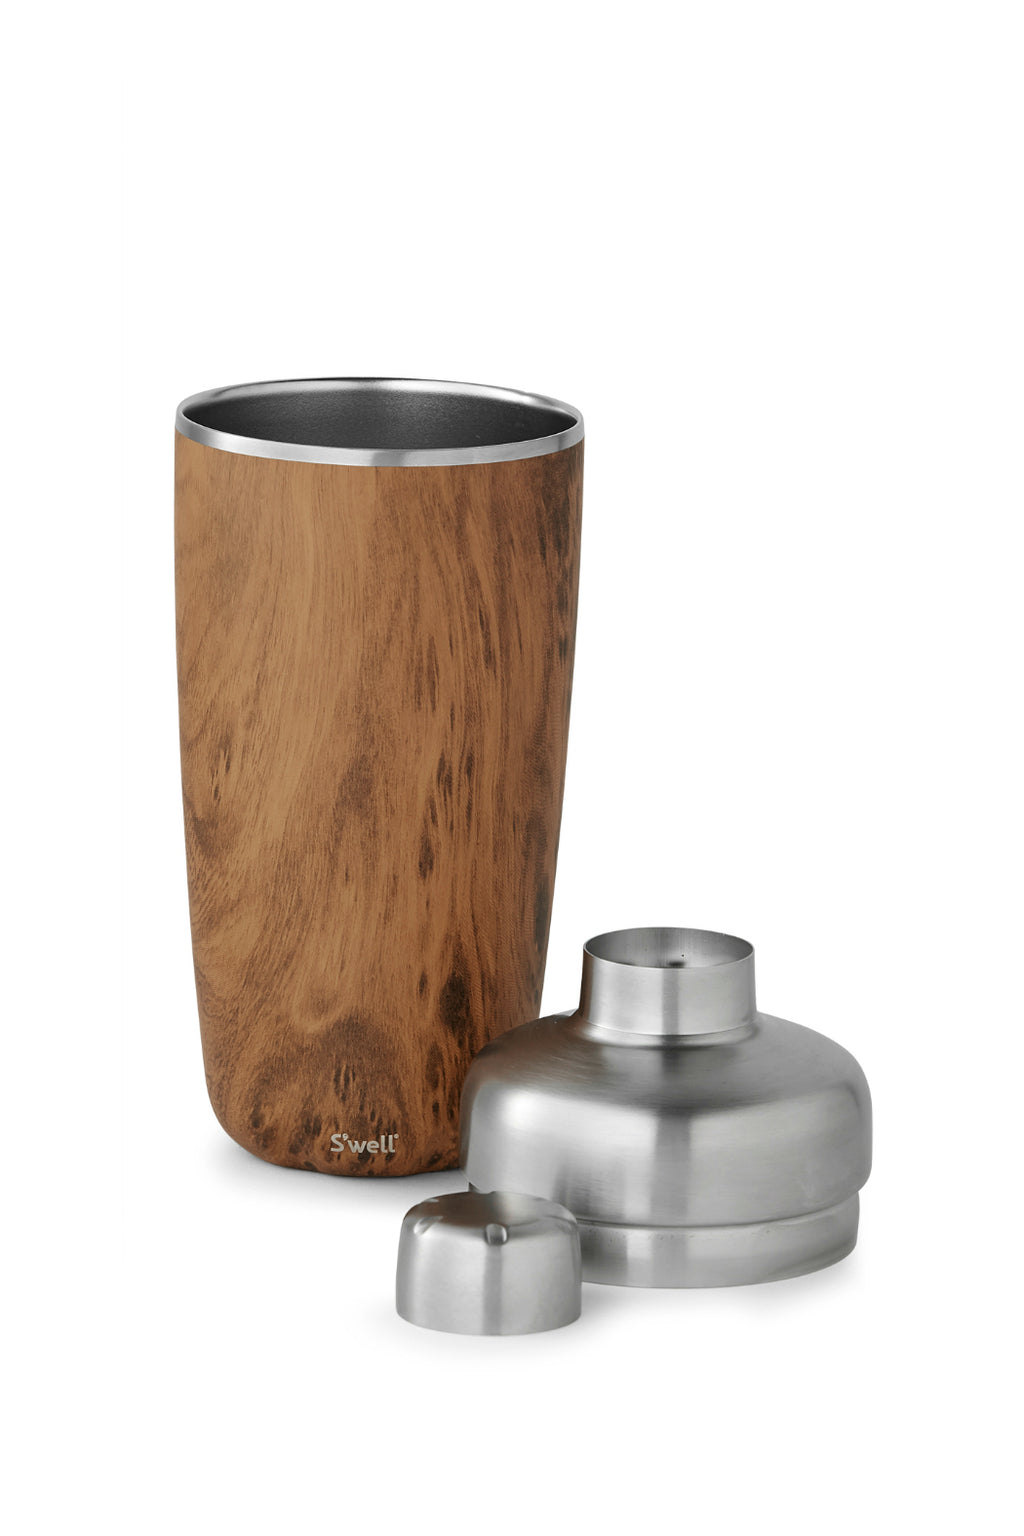 S'well Teakwood Shaker Set 18 oz